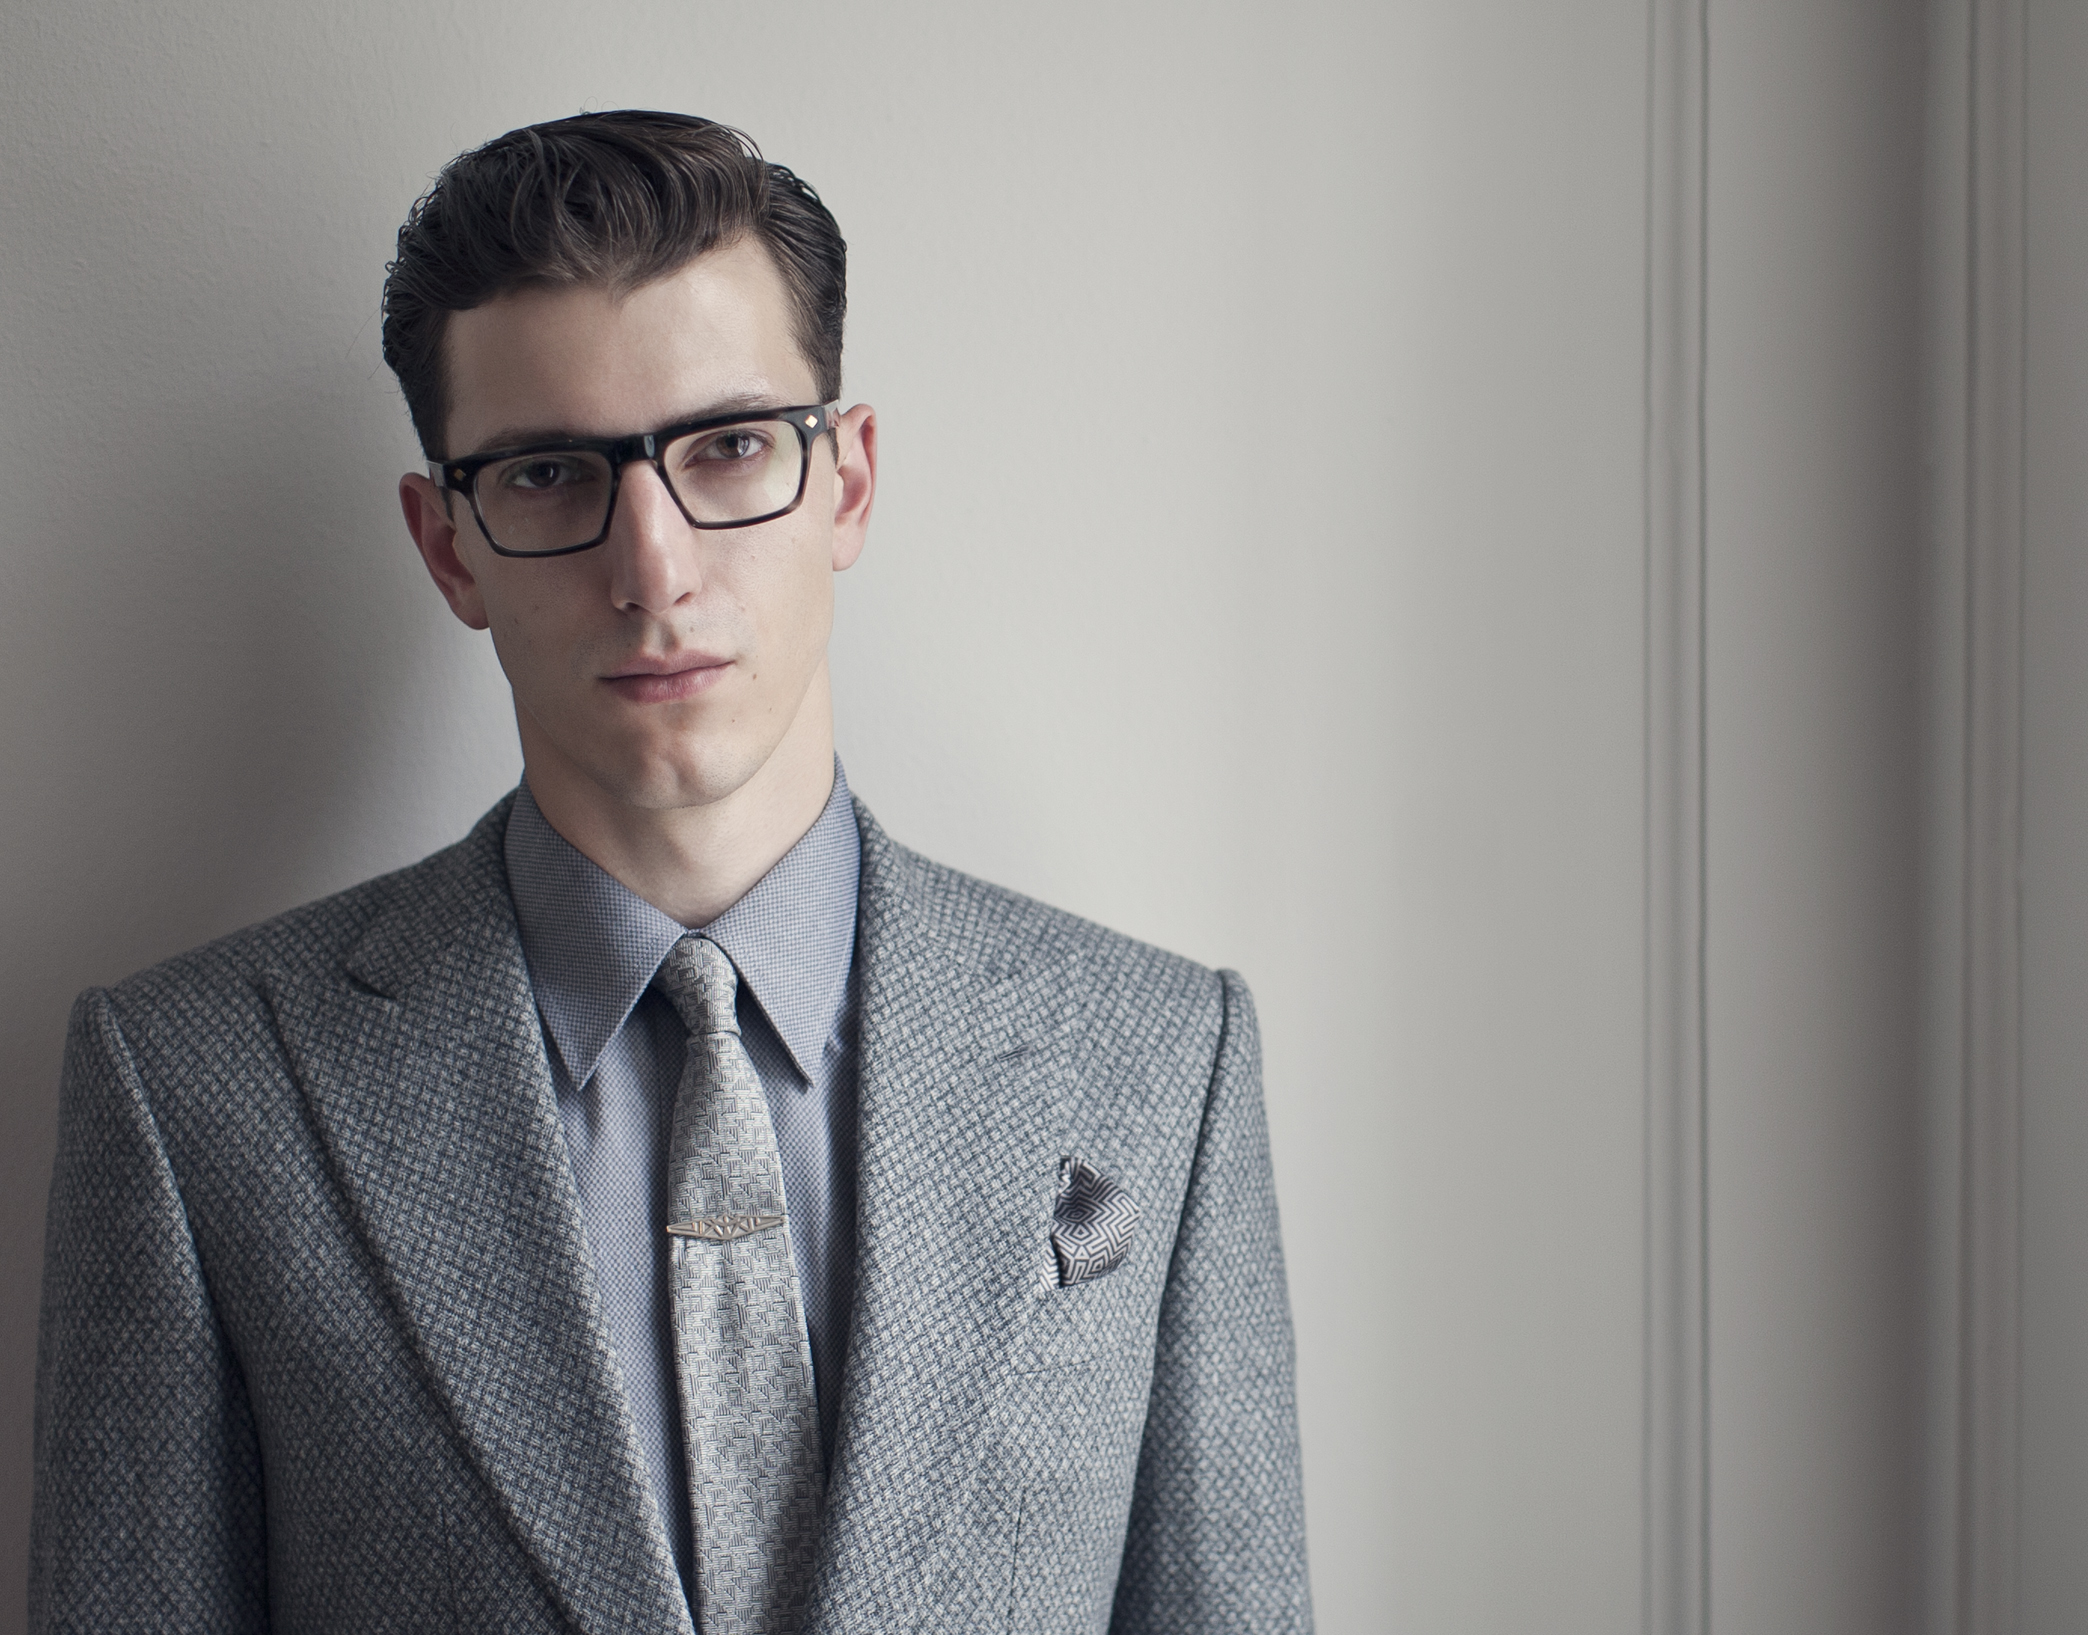 Hardy Amies Signature Eyewear Collection has a Classic Gentleman's Charm